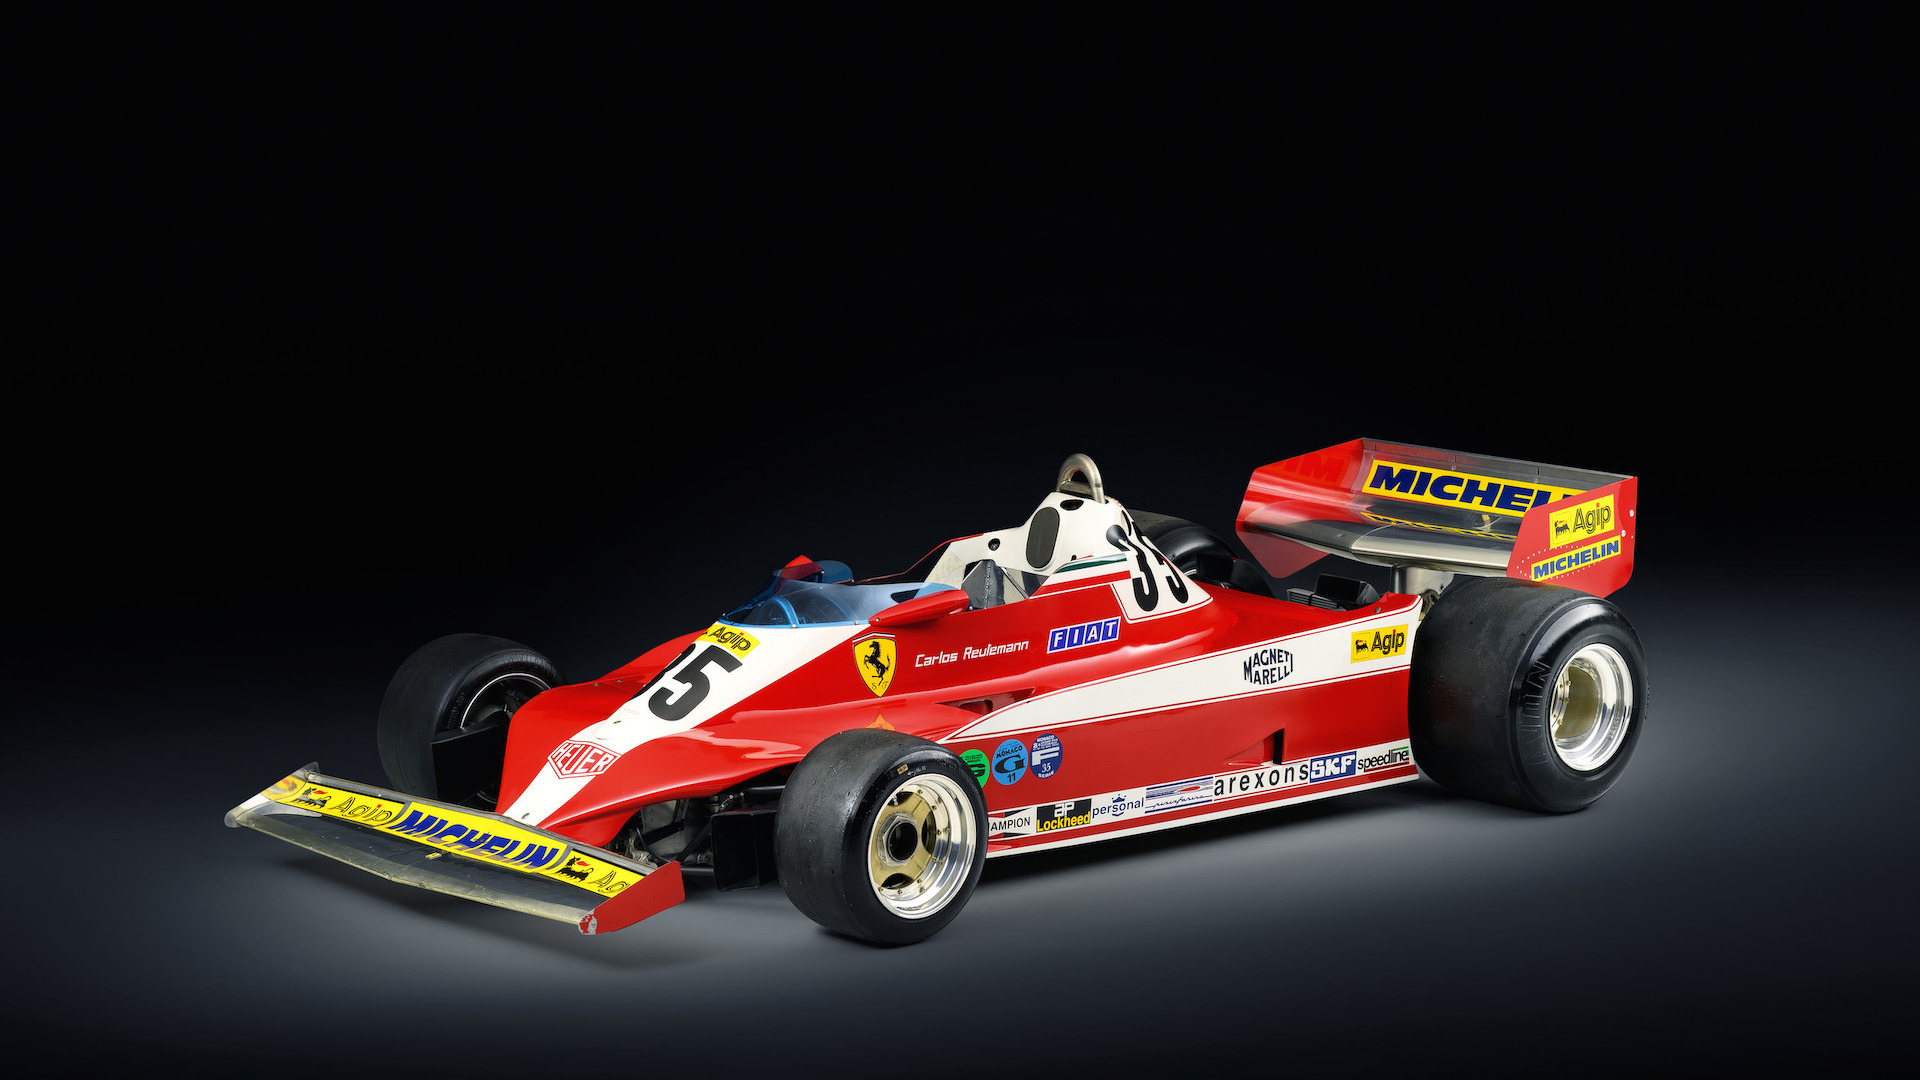 Excellent Old F1 Cars For Sale Images - Classic Cars Ideas - boiq.info